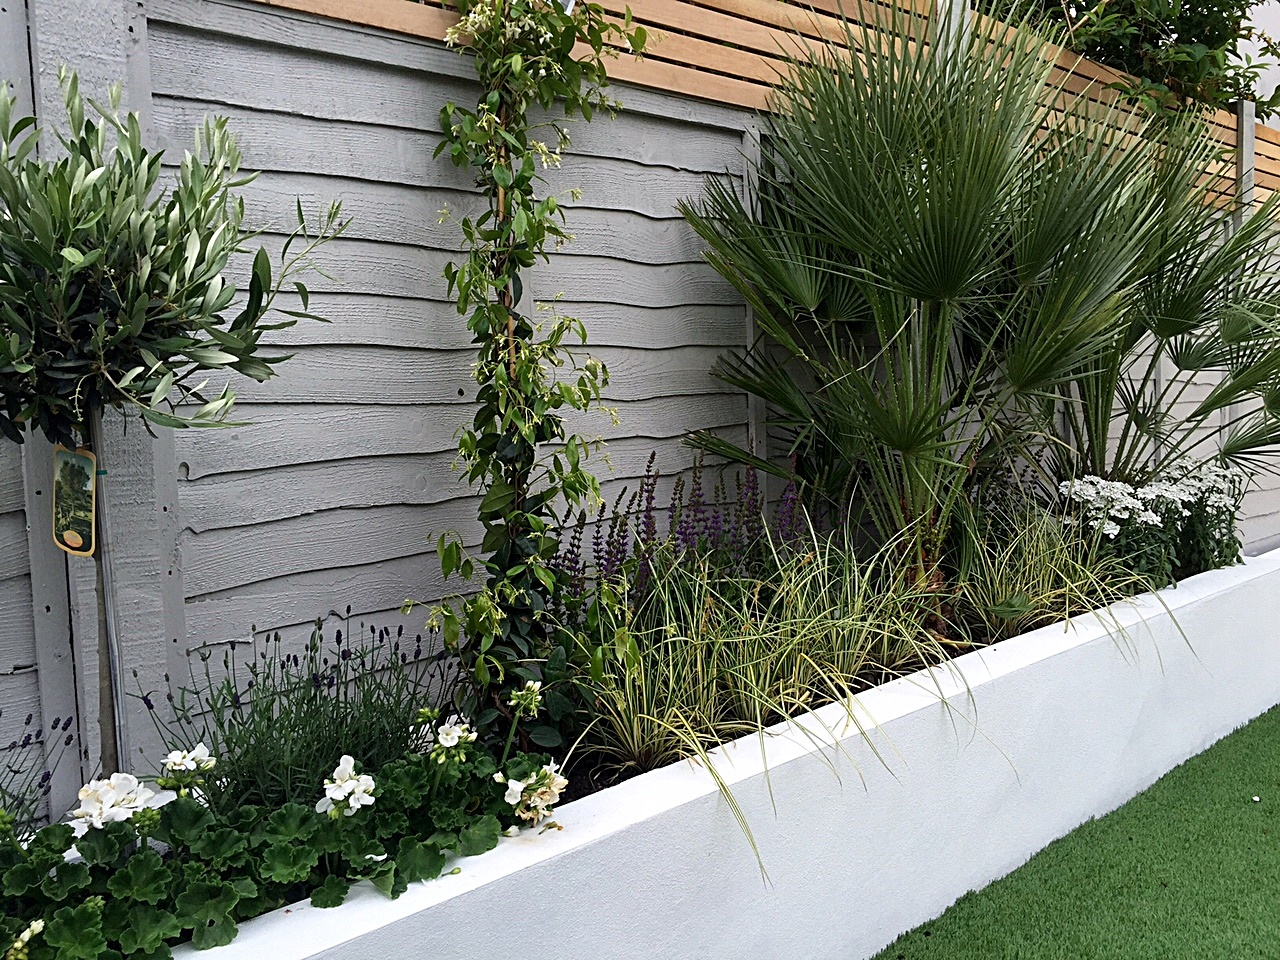 Artificial London Garden Design